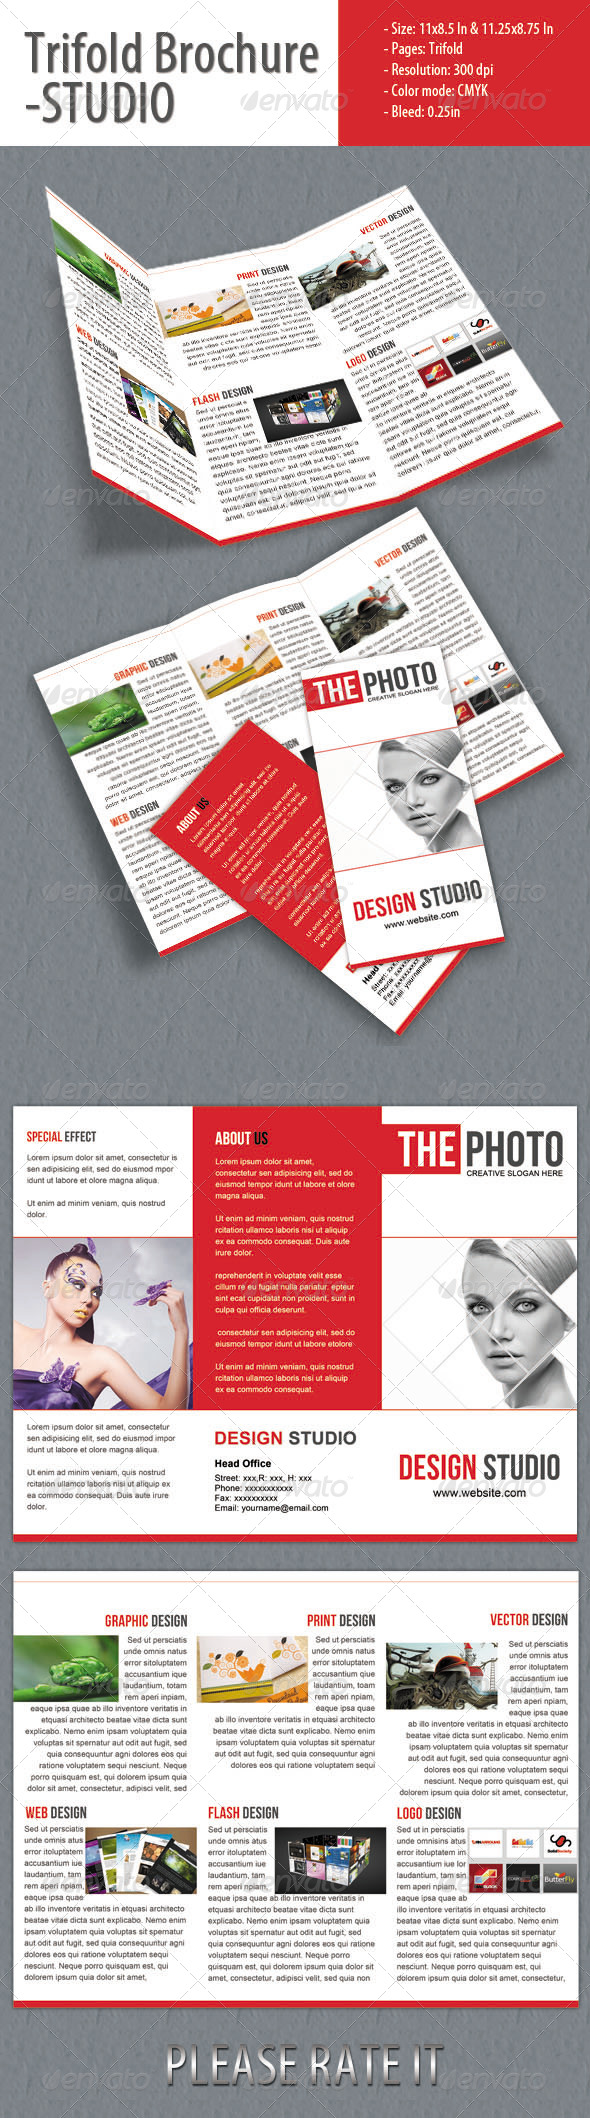 GraphicRiver Trifold Brochure for Studio 4353410